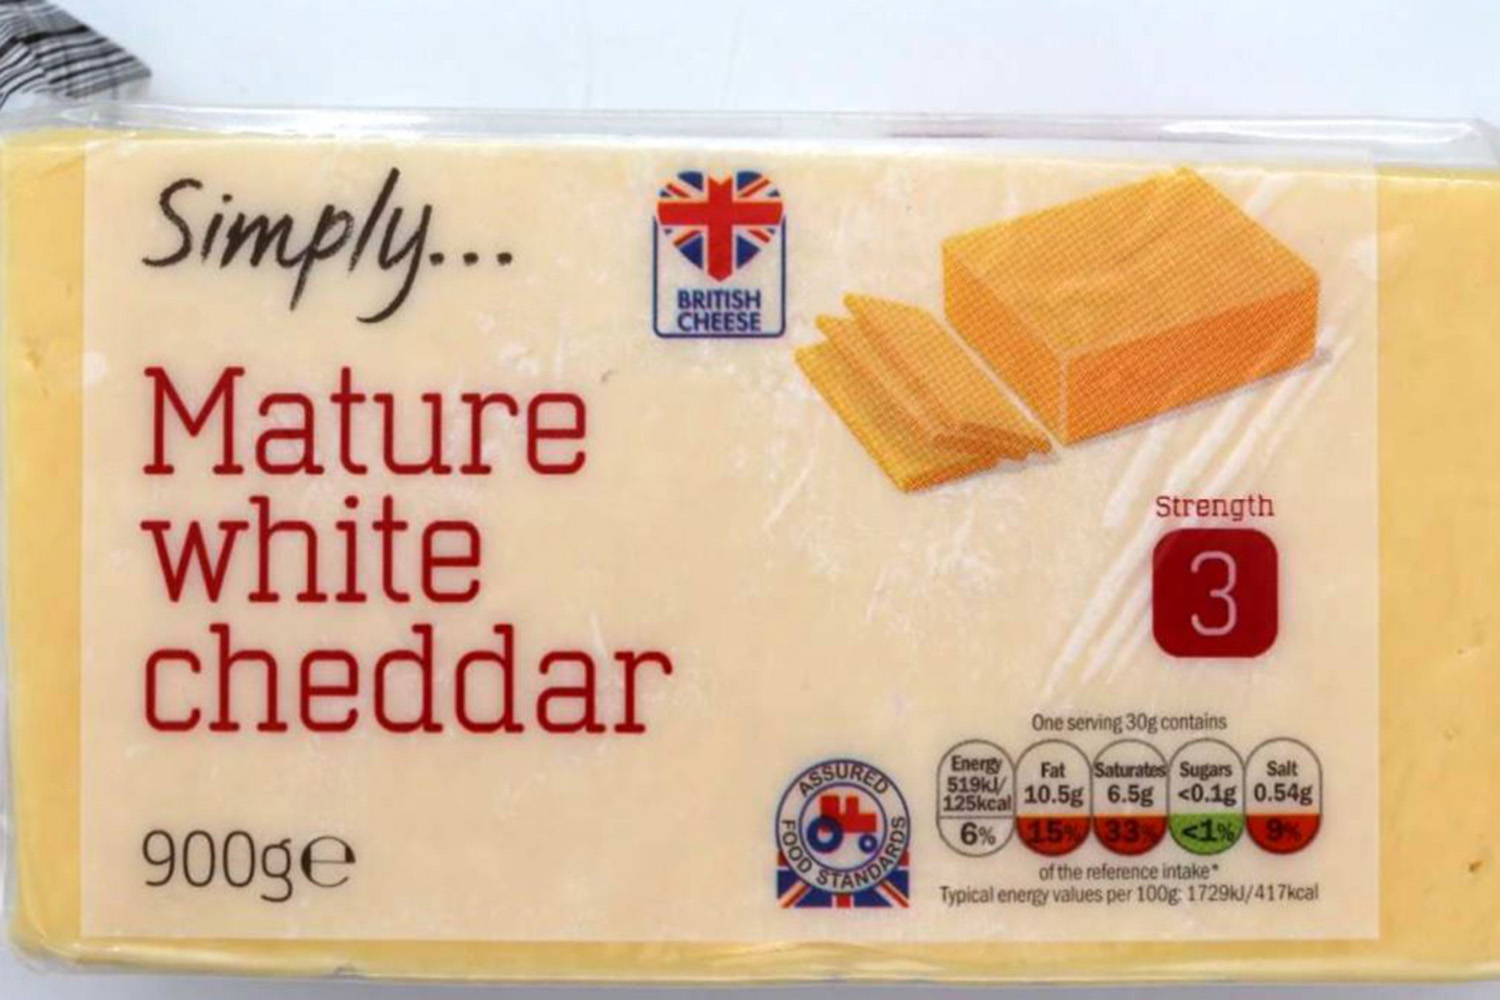 Lidl recalls cheddar cheese over fears it contains plastic pieces